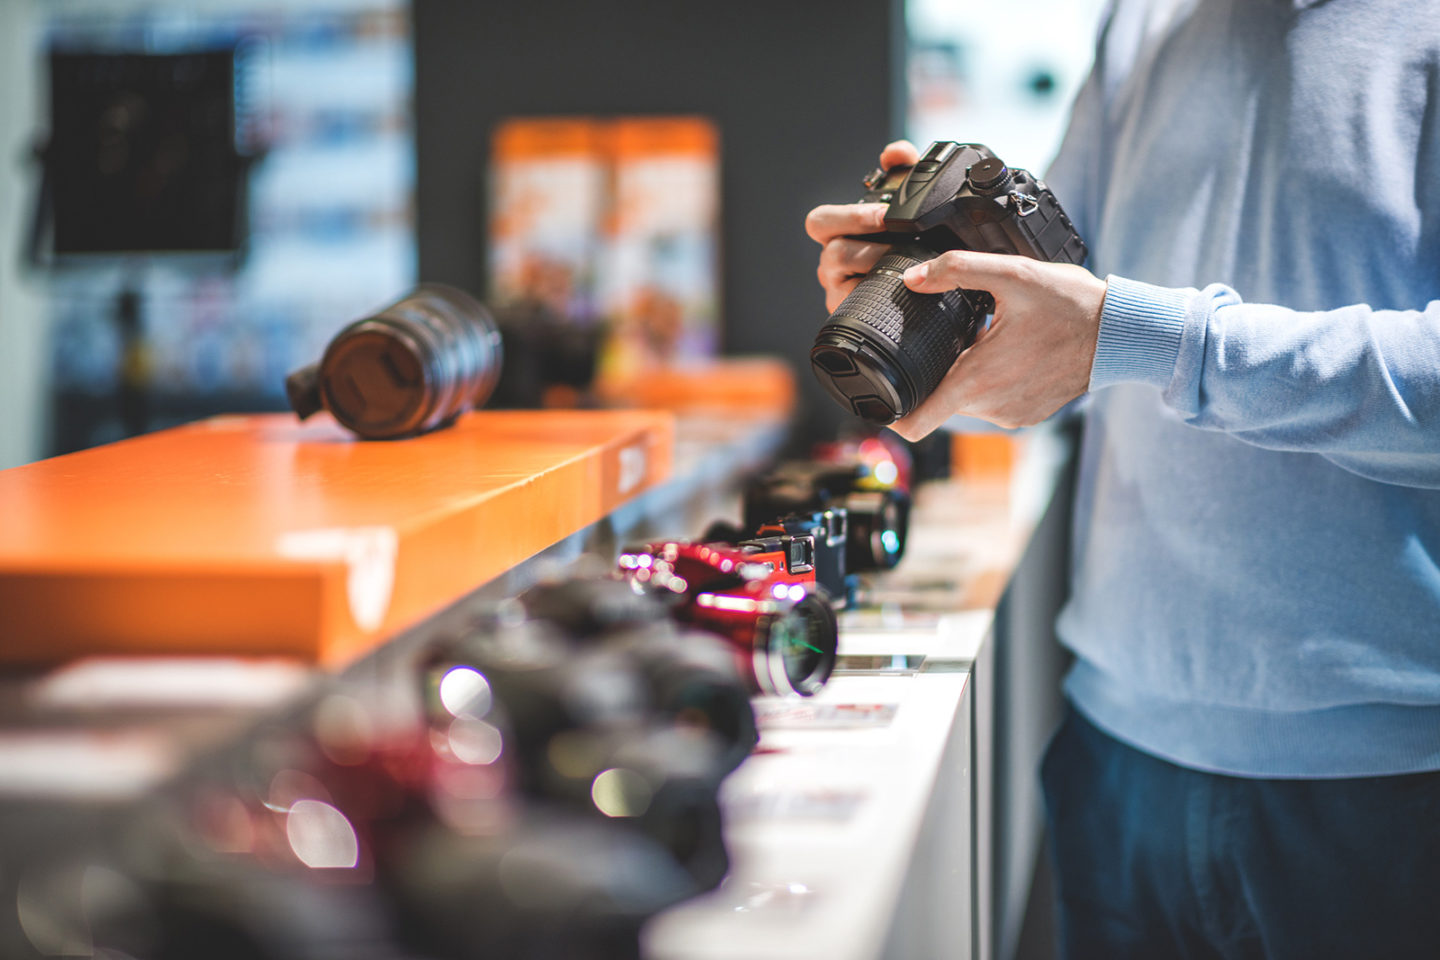 Best camera 2017: The Best Compact, CSC and DSLR Cameras